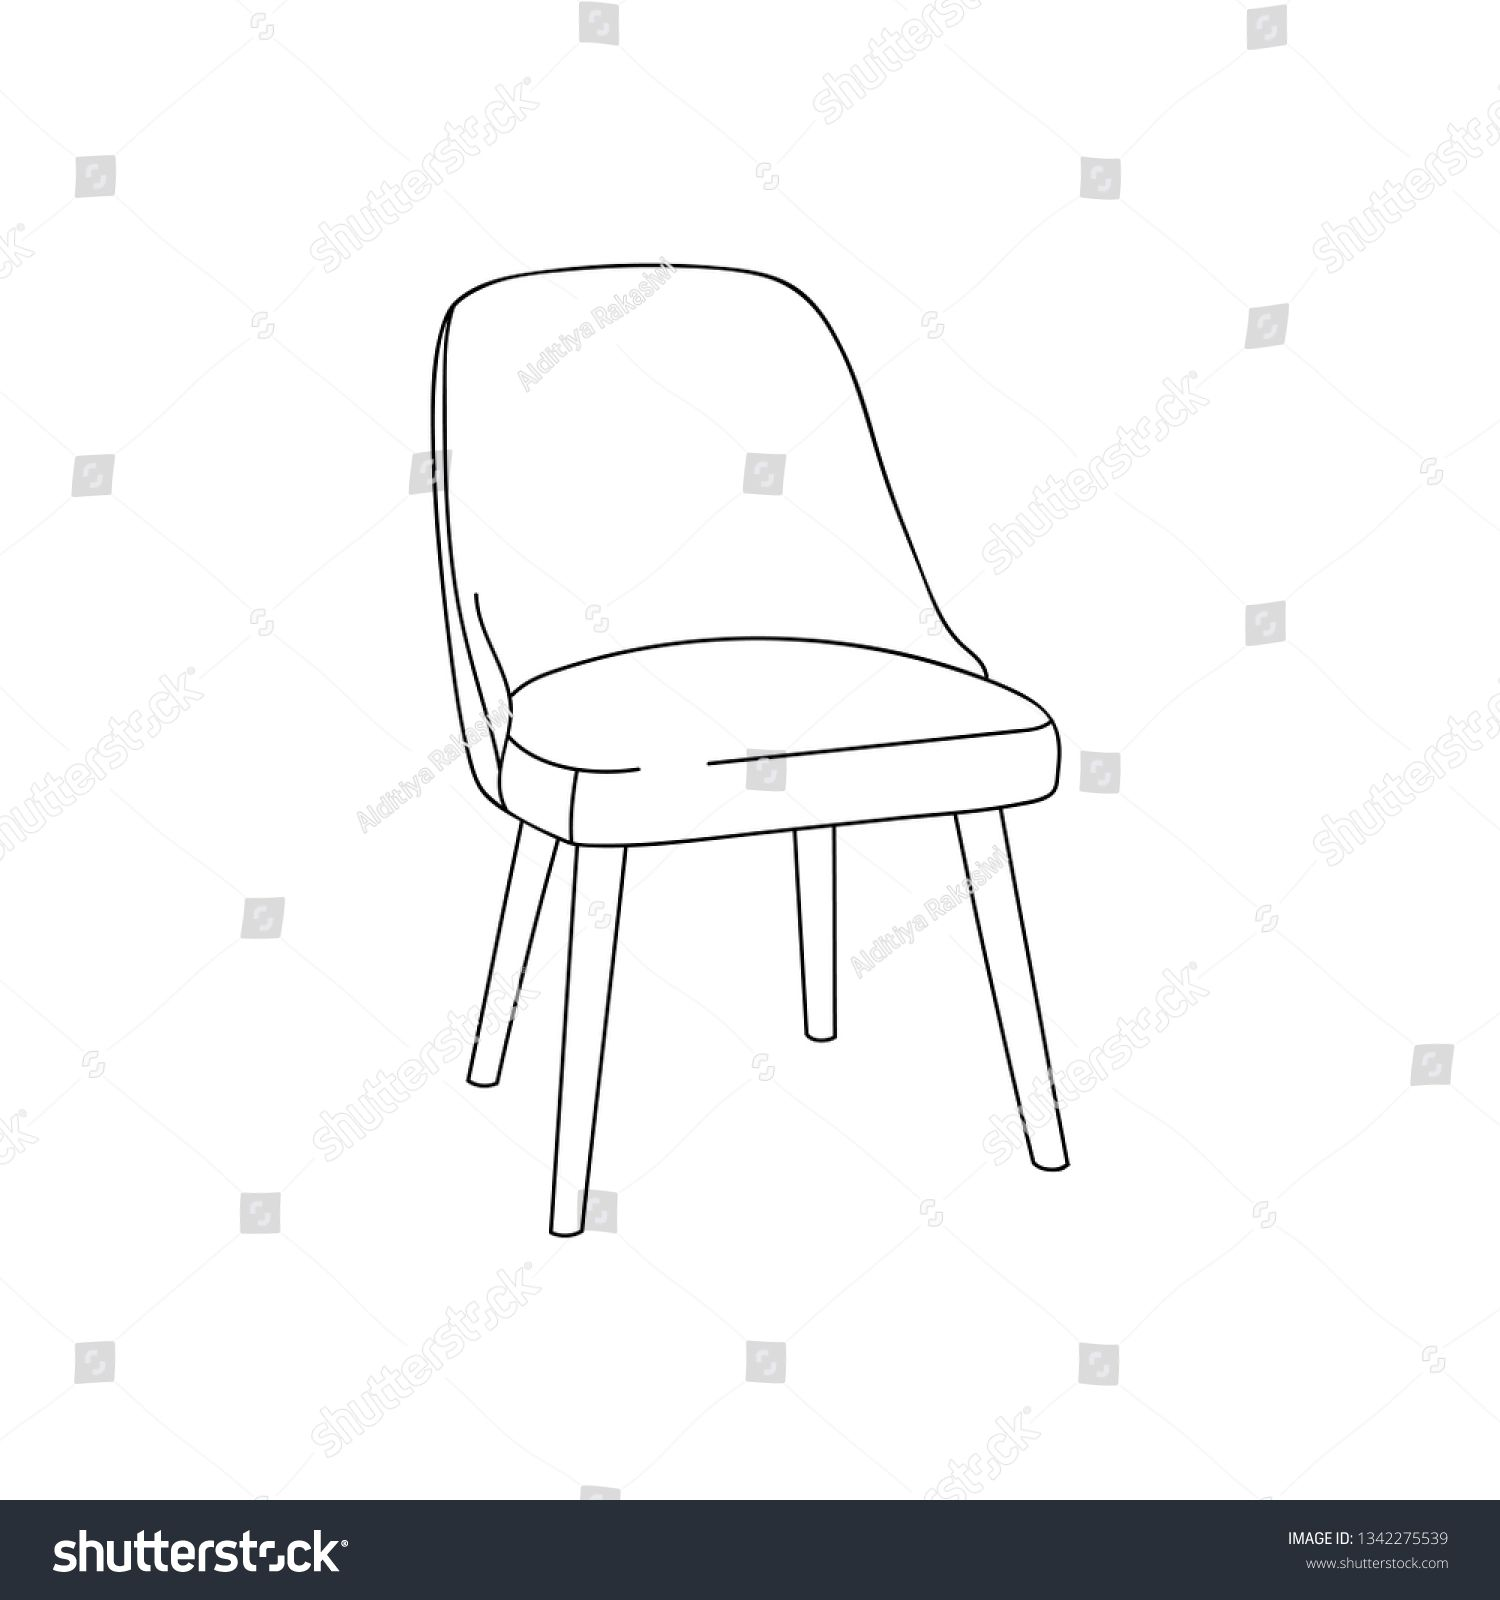 Dining Chair Furniture Simple Outline Illustration Isolated Clip Art Vector Ad Spon Simple Outline Furniture Dining In 2020 Furniture Chair Dining Chairs Chair